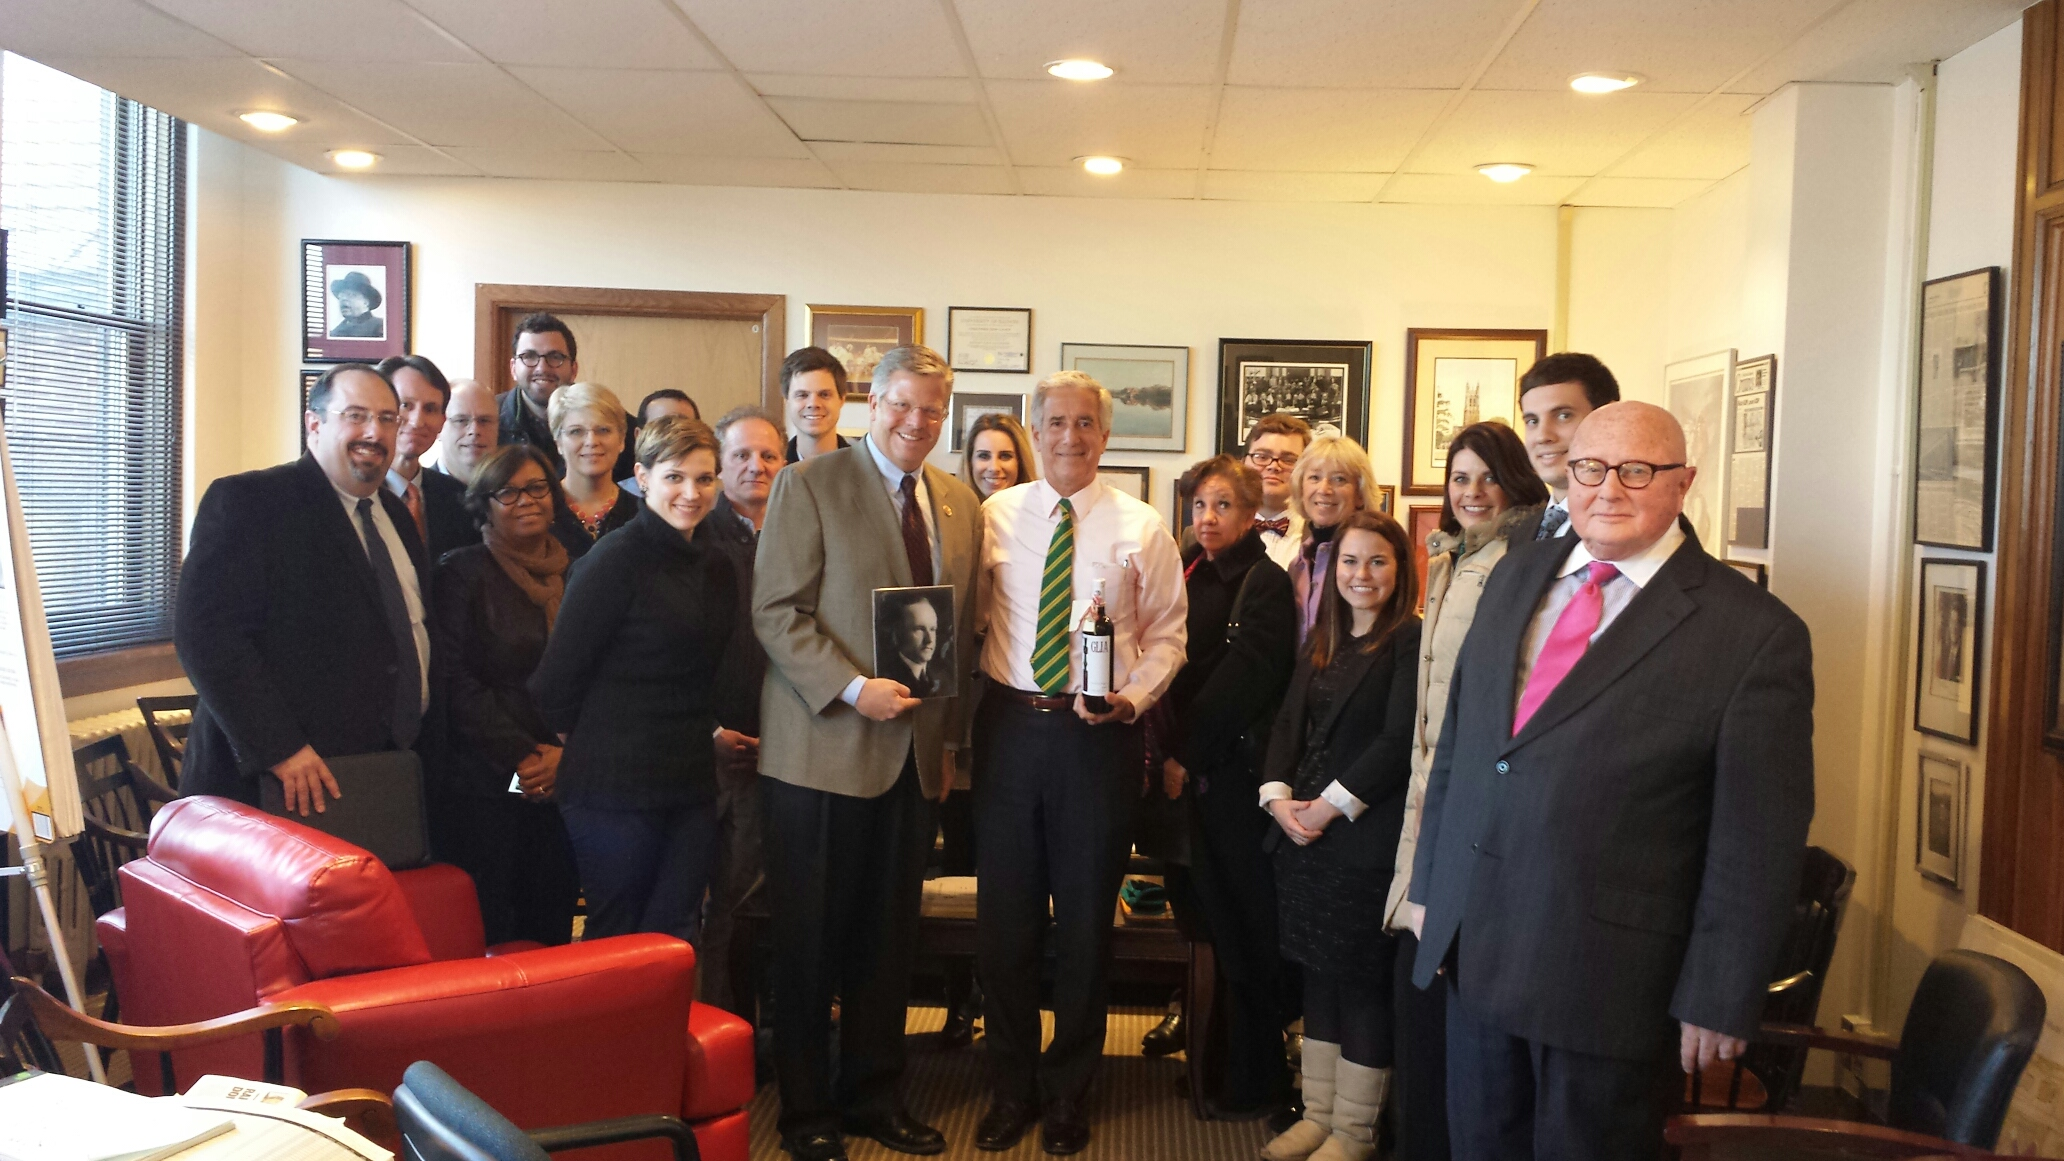 Group photo of Kane County and Congressman Hultgren's Staff